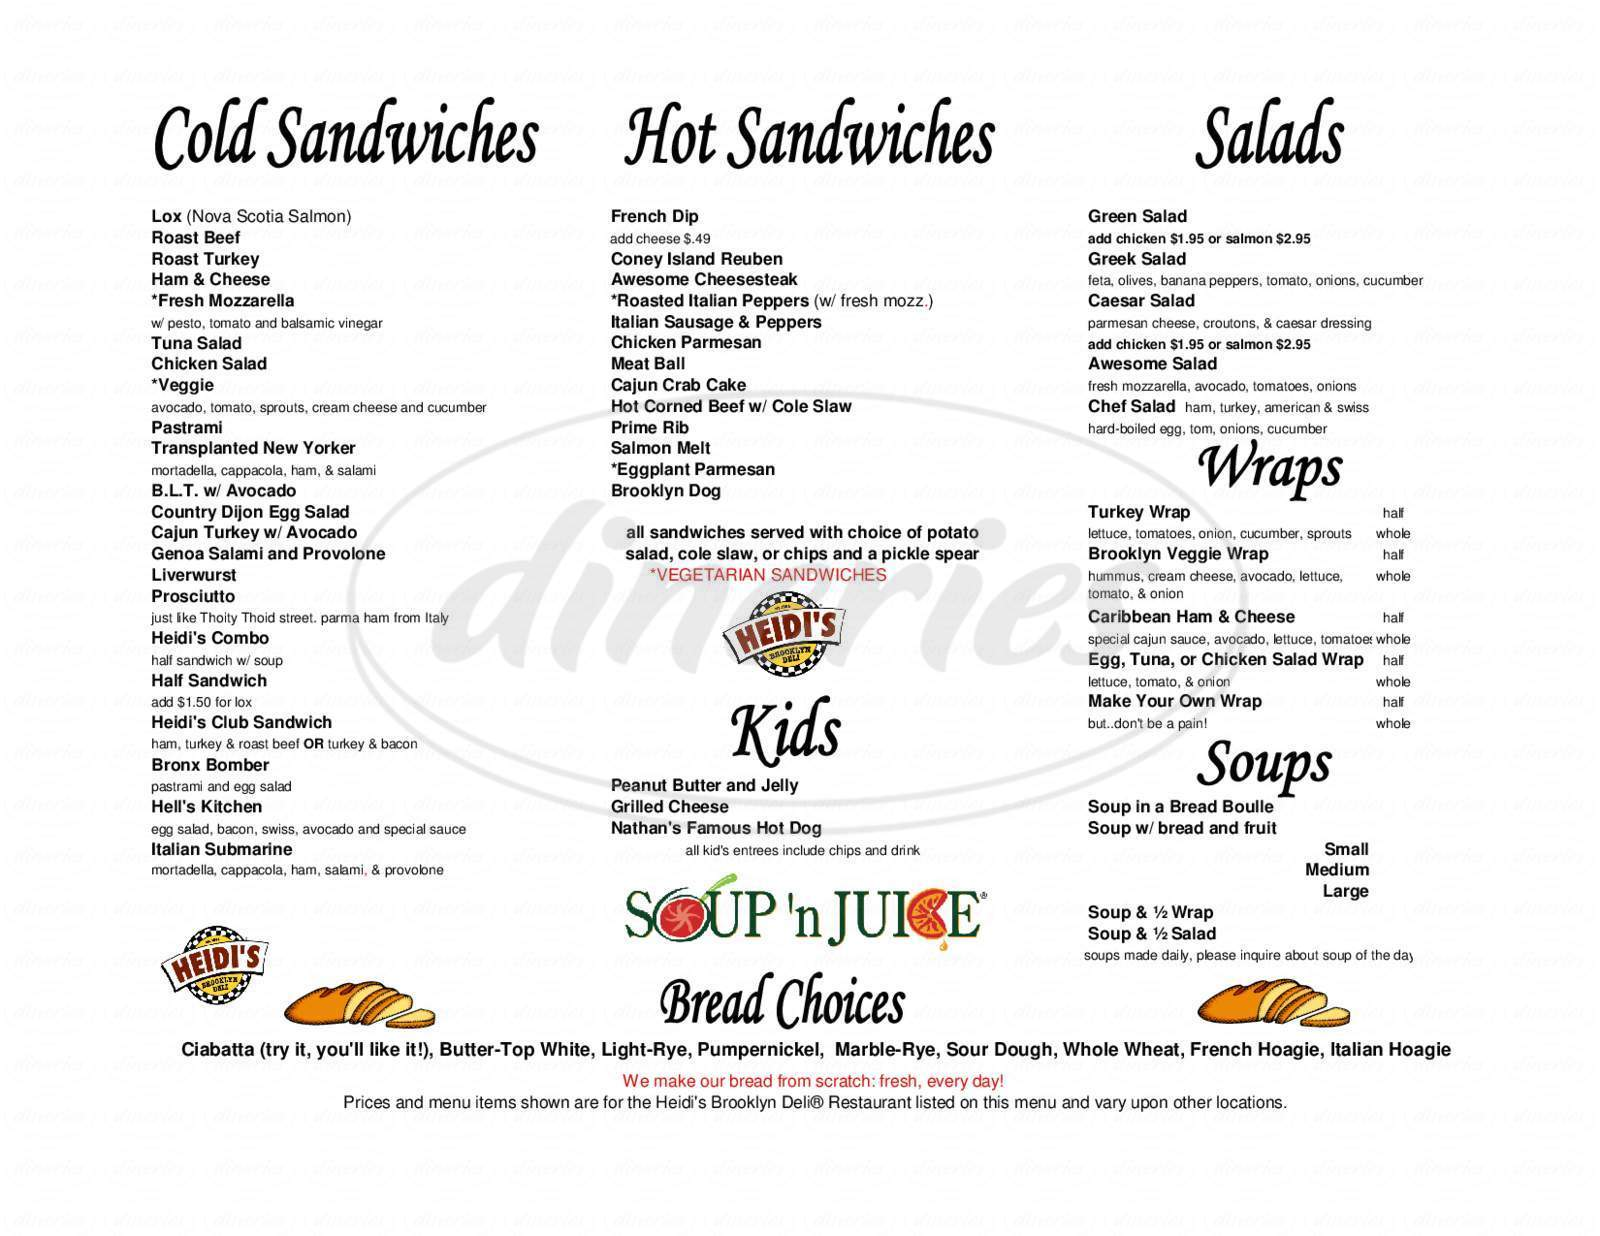 menu for Heidi's Brooklyn Deli